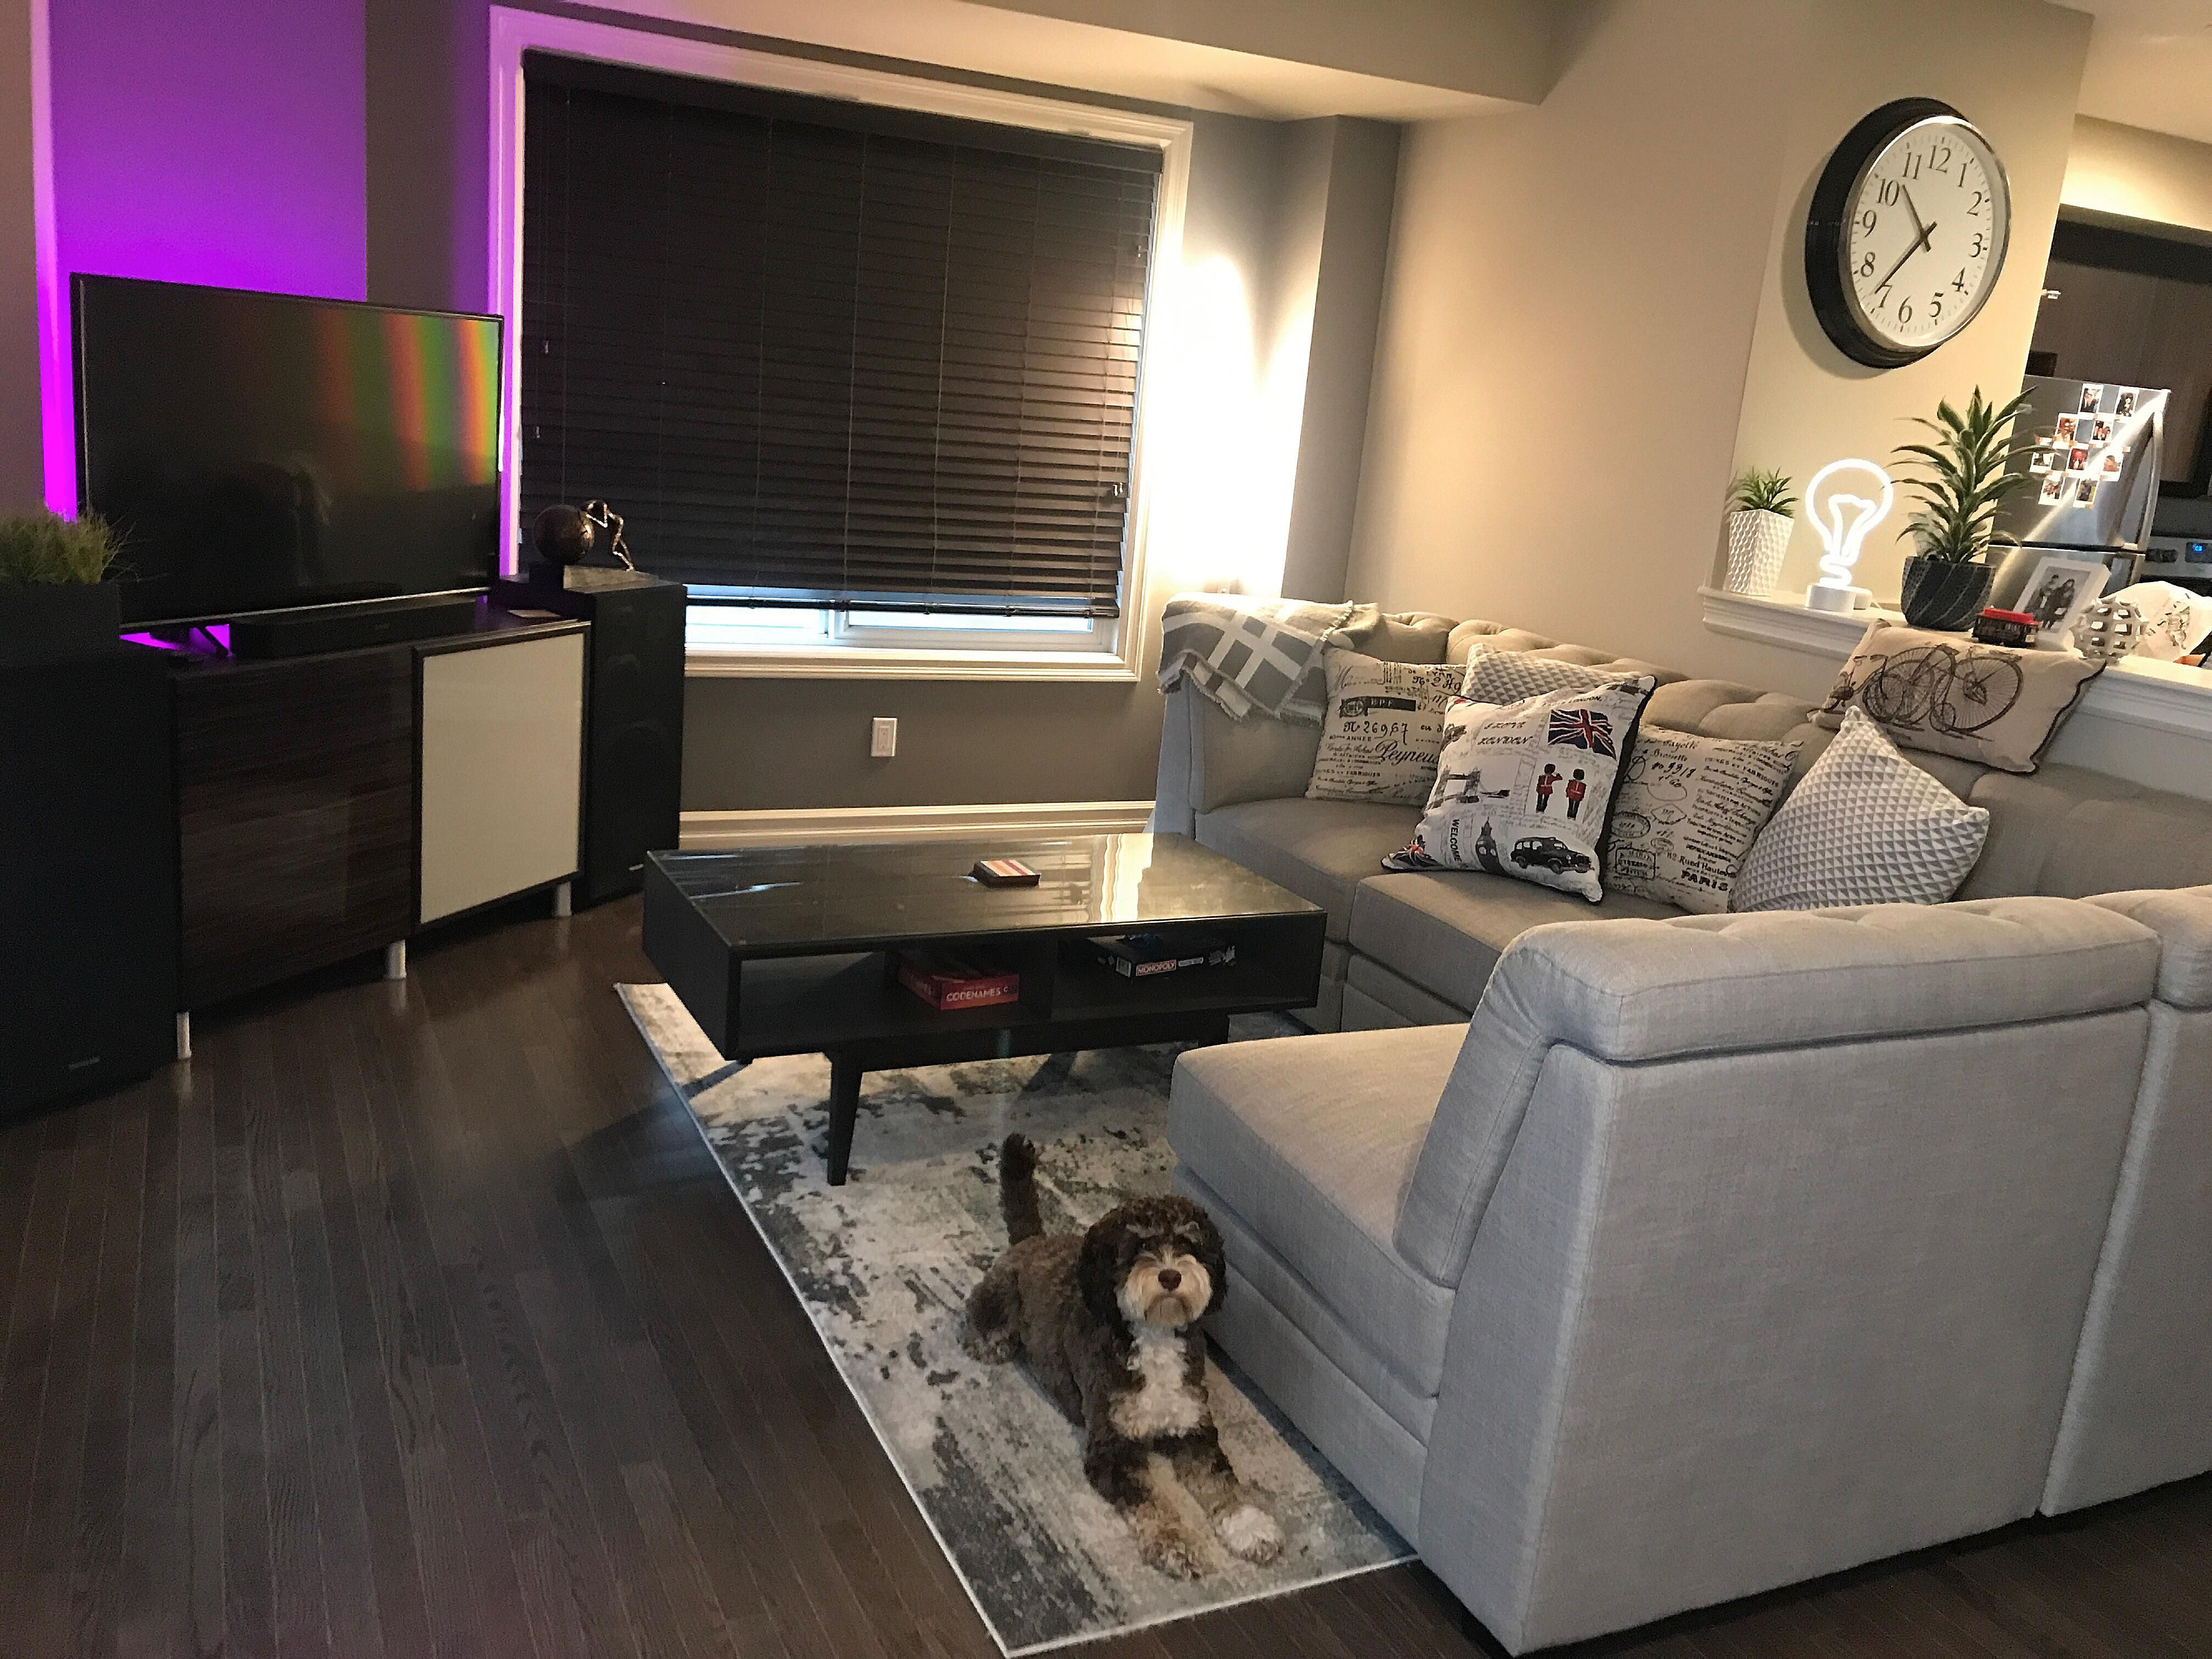 Thanks To All For Helping Me Decorate My Living Room Edmonton Ab Canada Small Living Room Design Man Room Room